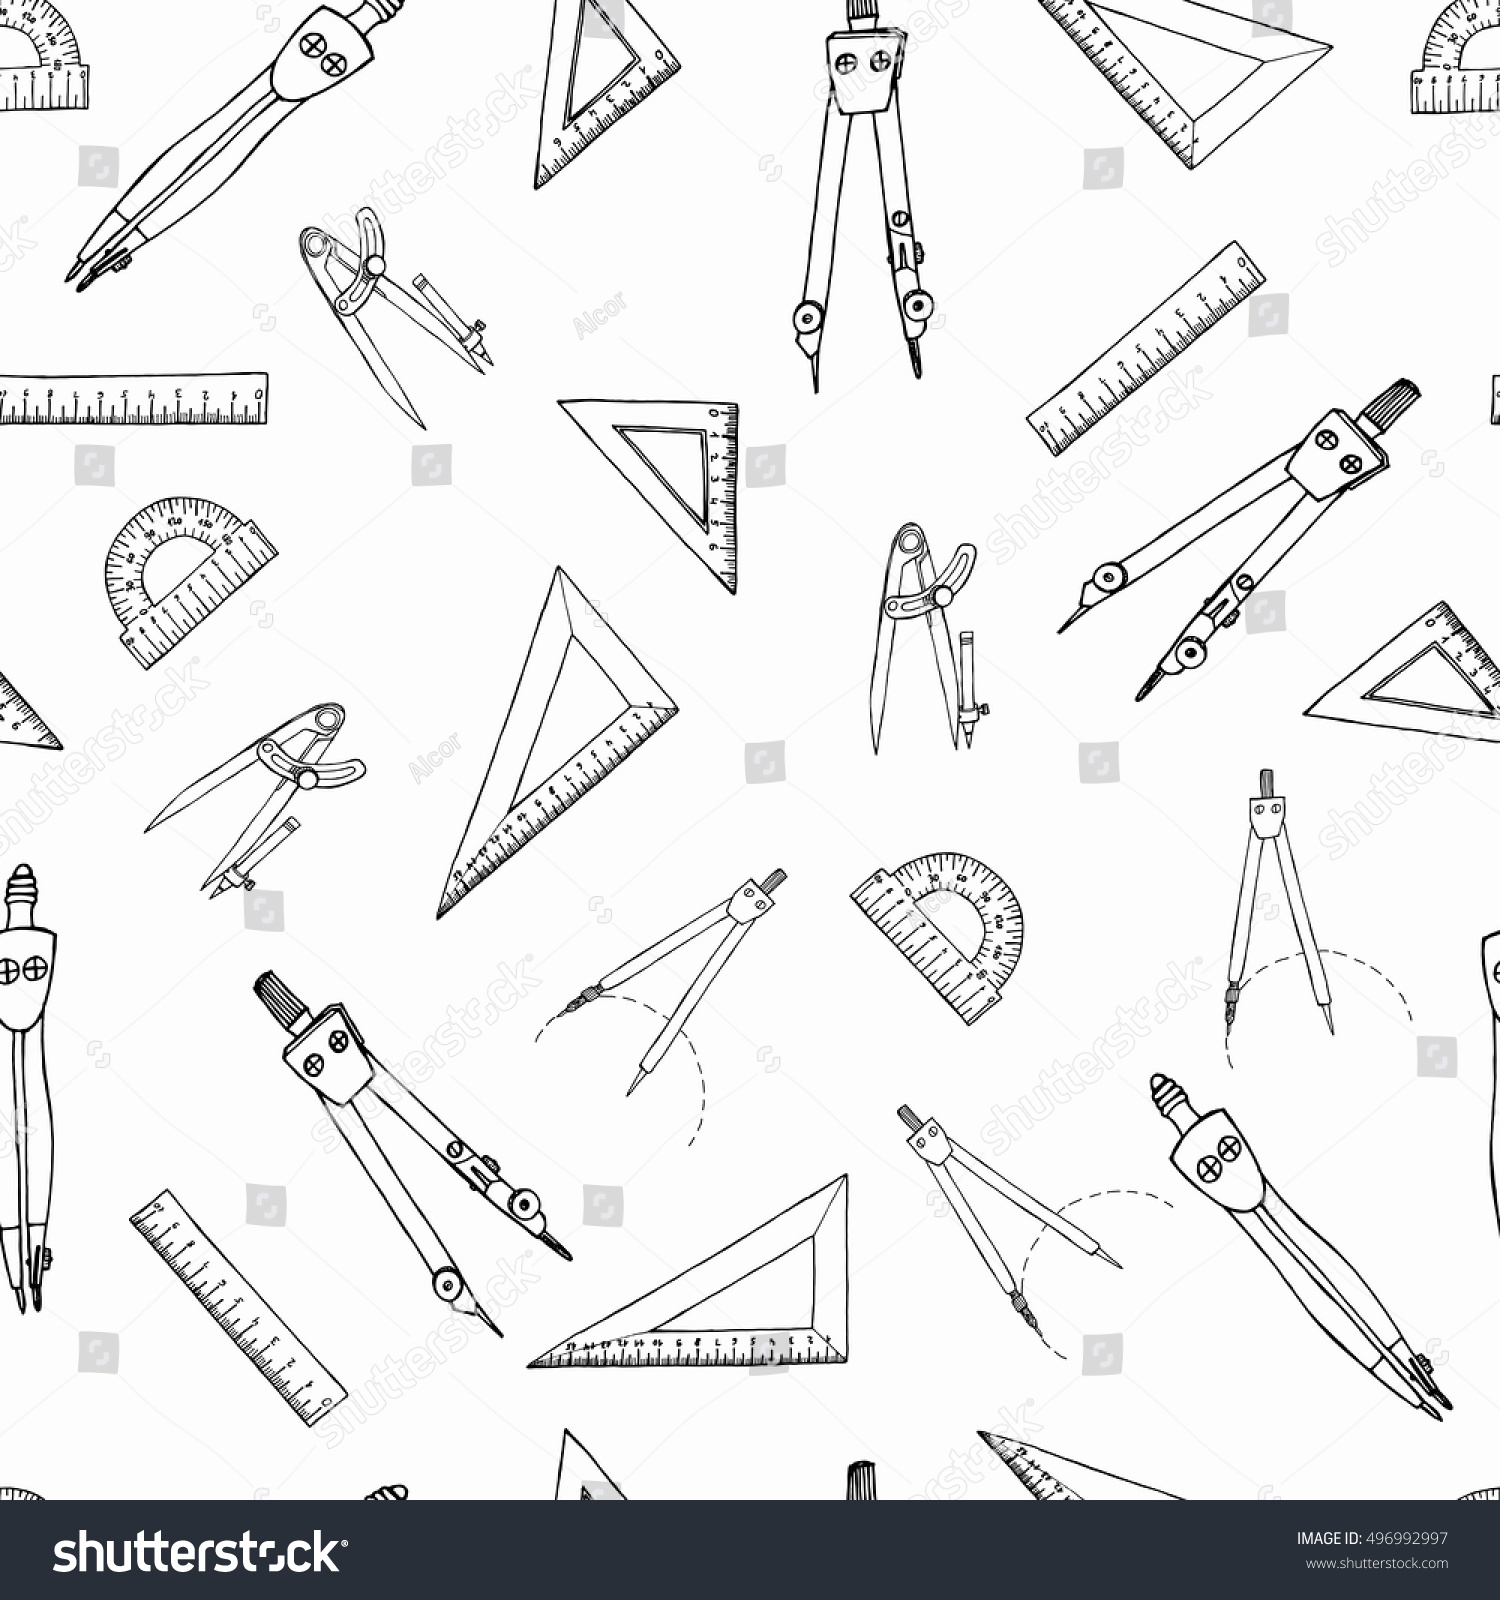 Drawing Lines With A Ruler Worksheet : Worksheet protractor print mytourvn study site